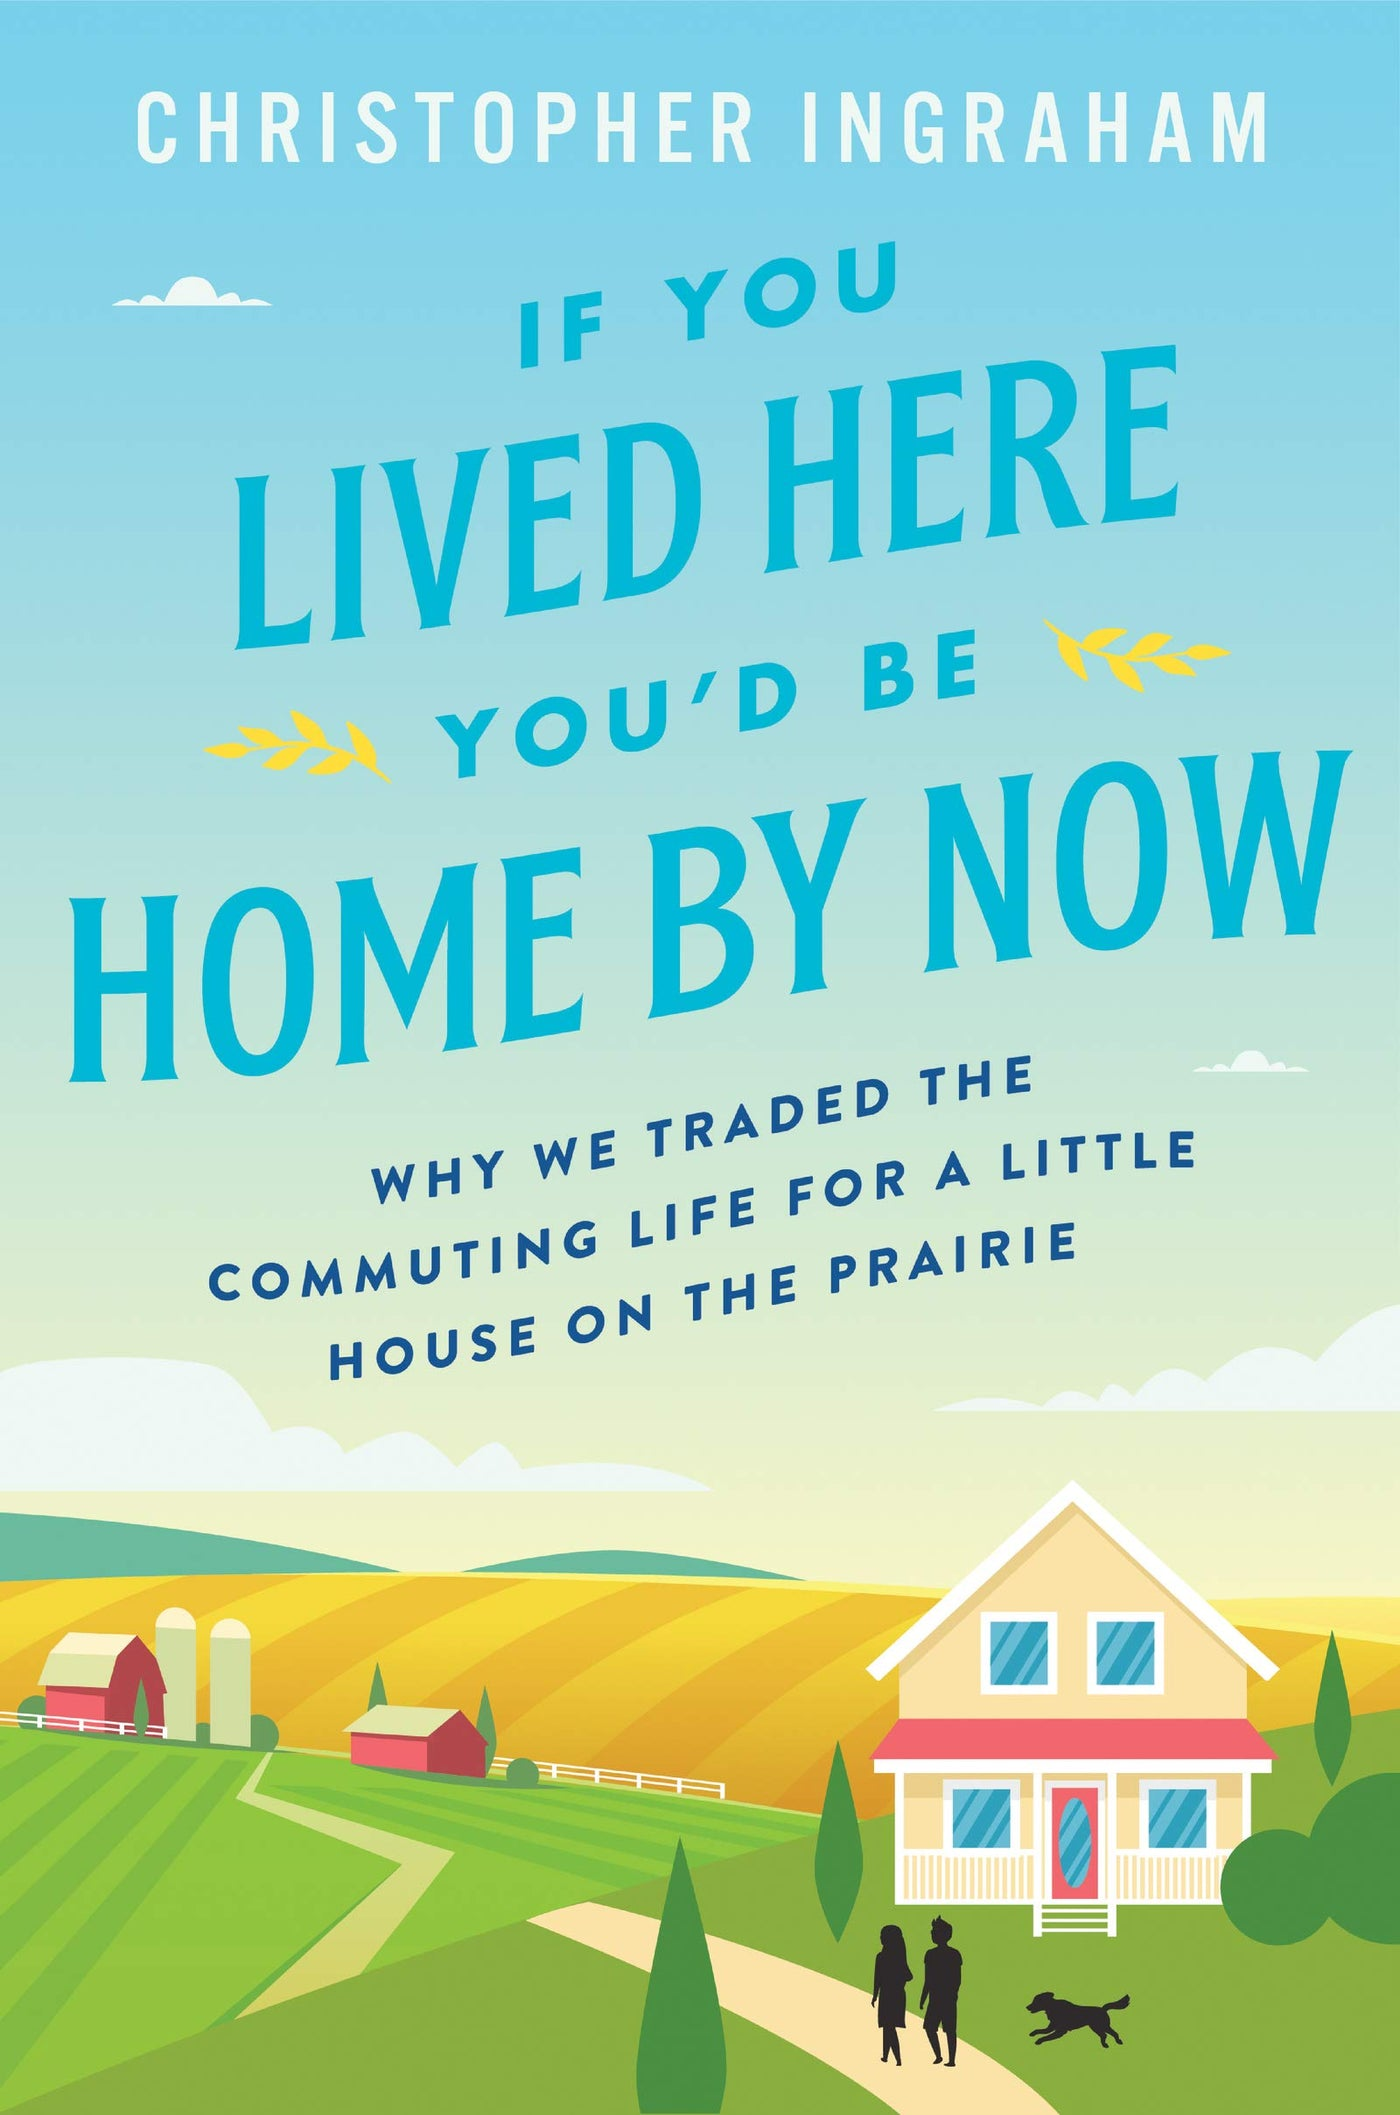 If You Lived Here You'd Be Home By Now: Why We Traded the Commuting Life for a Little House on the Prairie by Christopher Ingraham